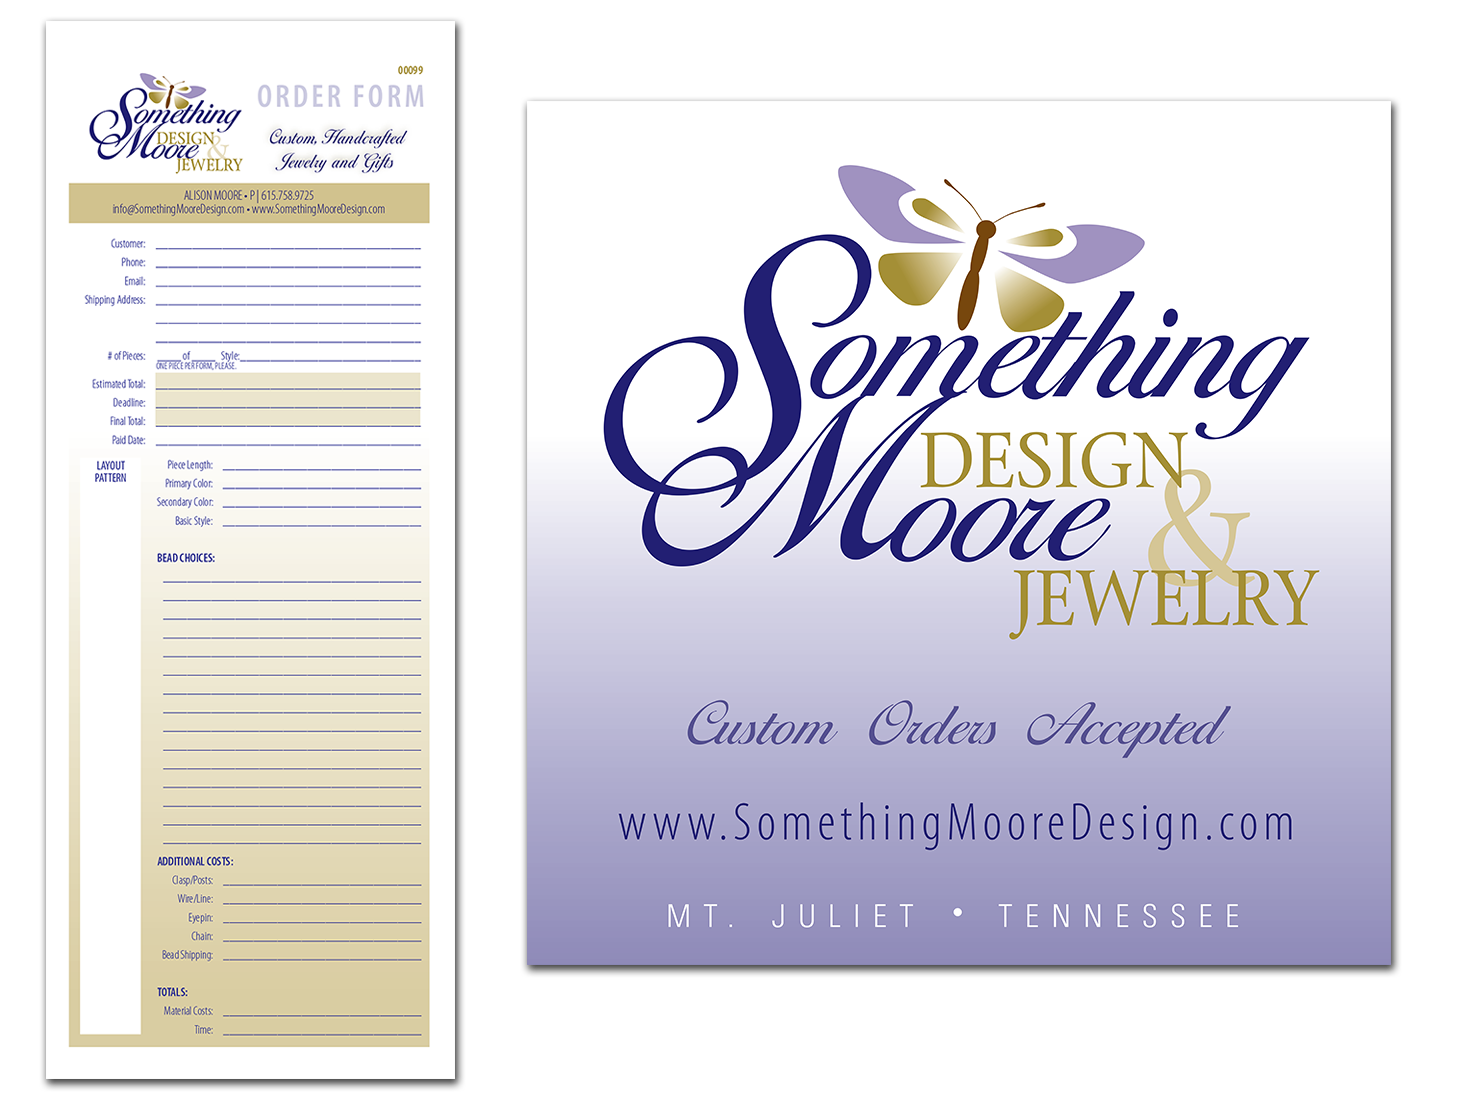 Order Forms and Banner